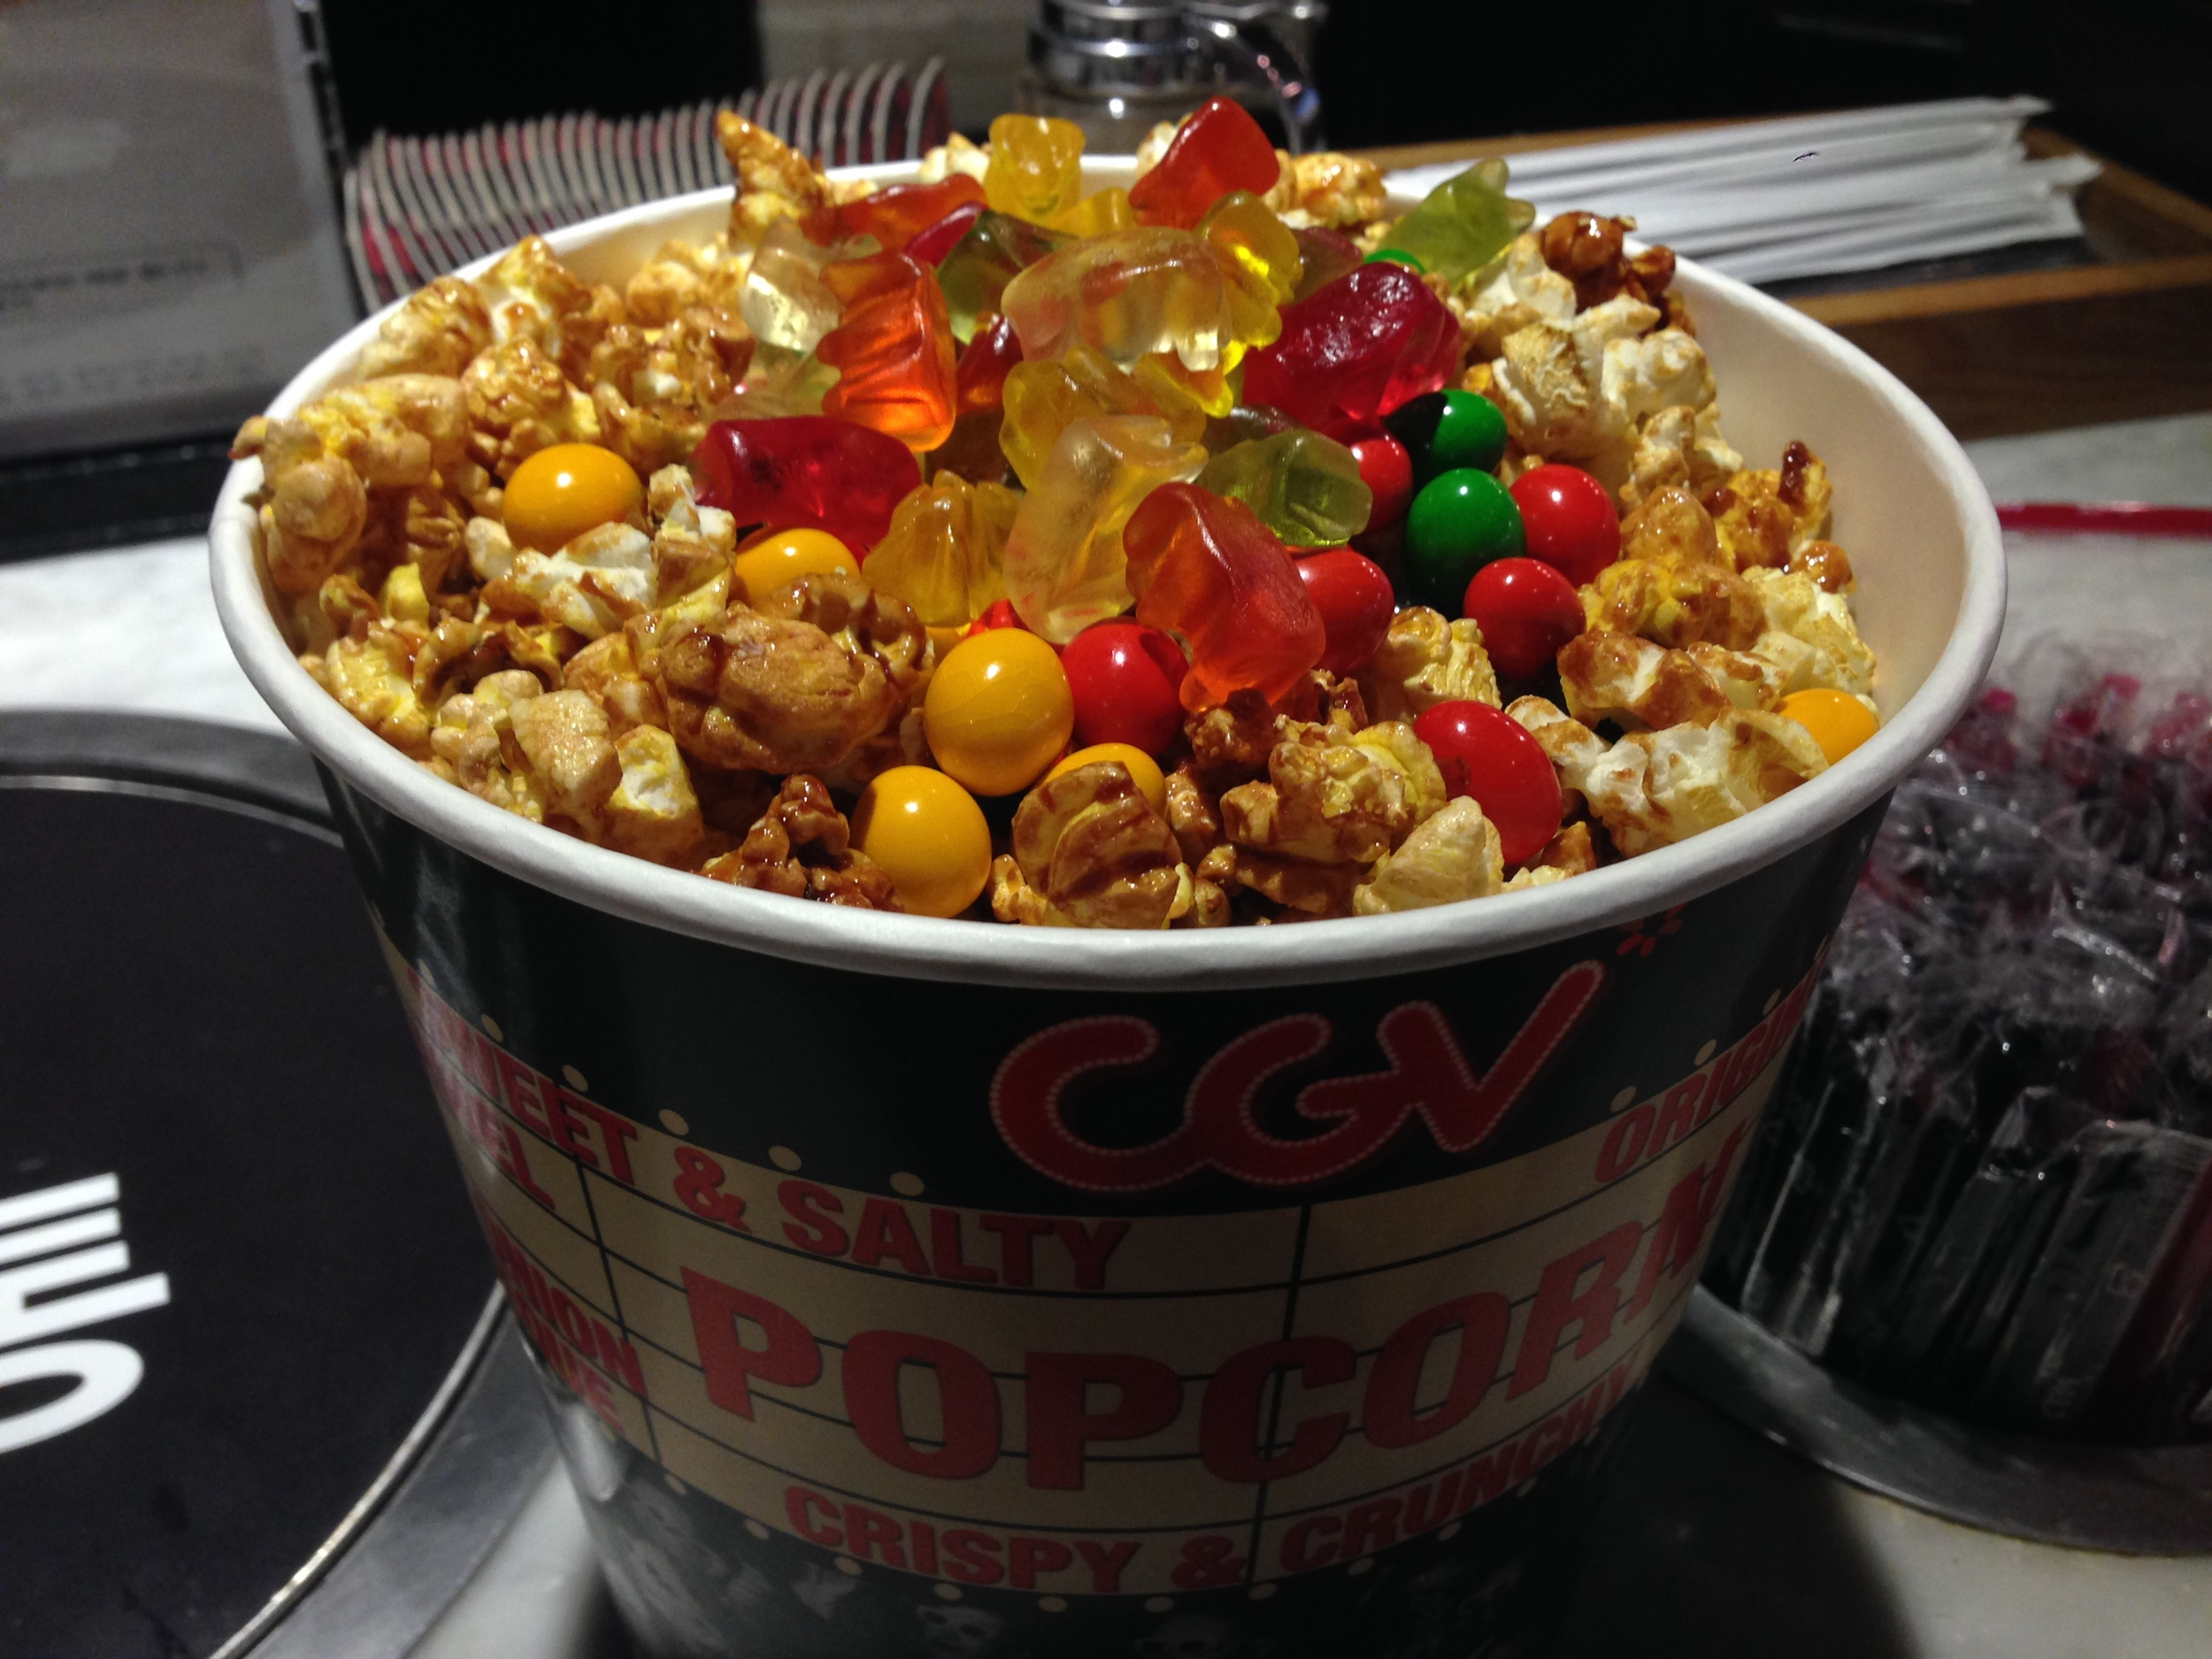 Caramel Popcorn with toppings